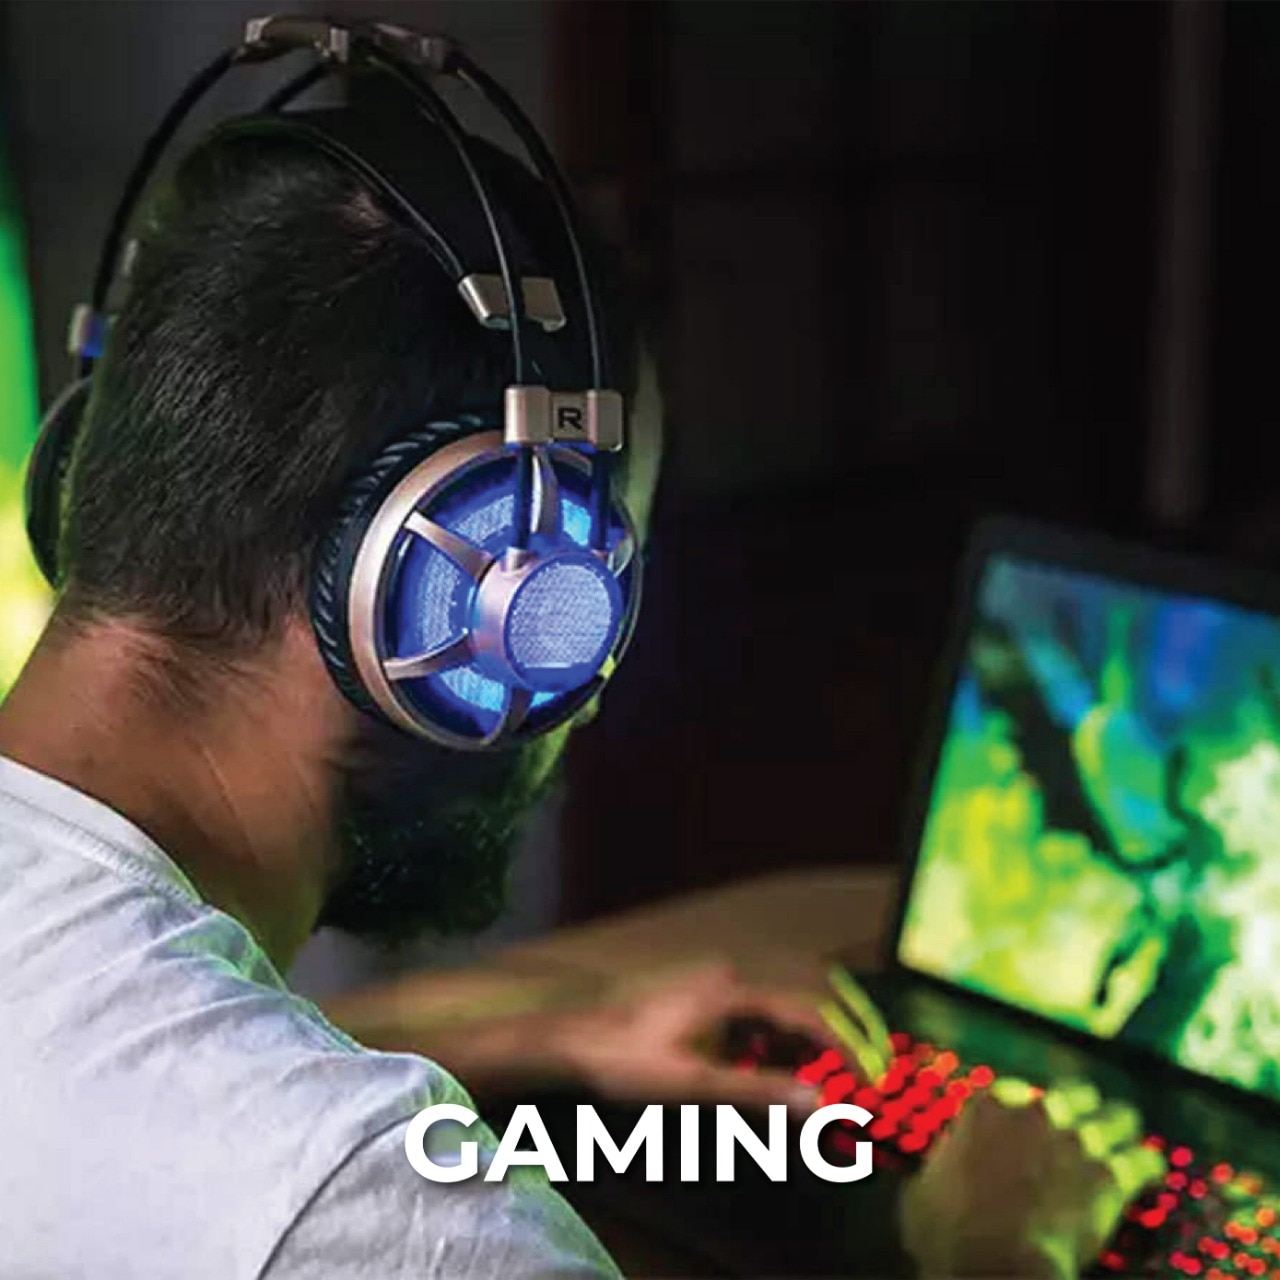 We can say that Gaming is a fo